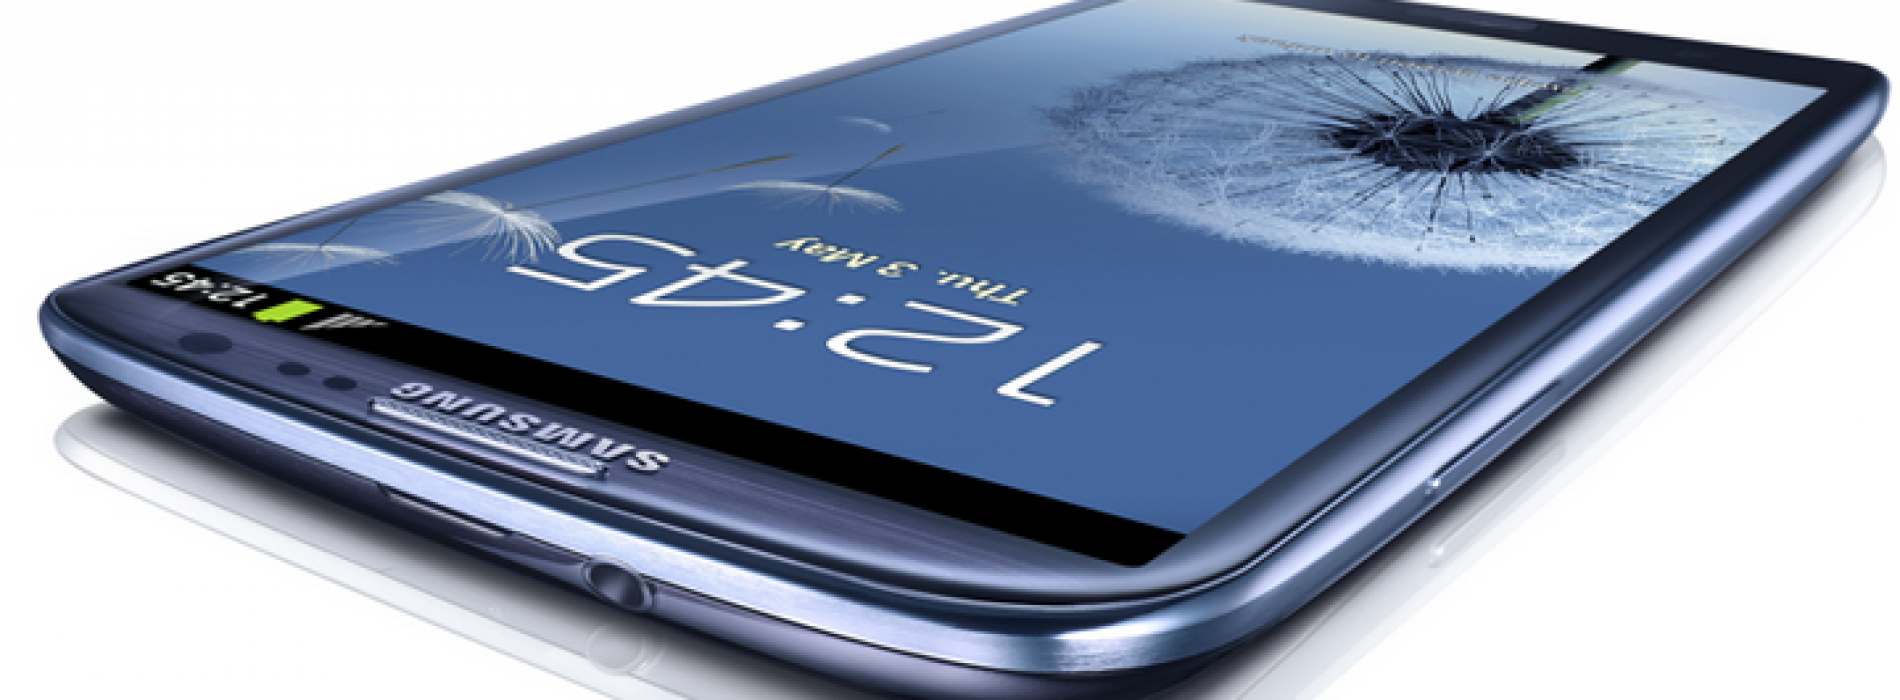 Android 4.1 found running on Galaxy S III